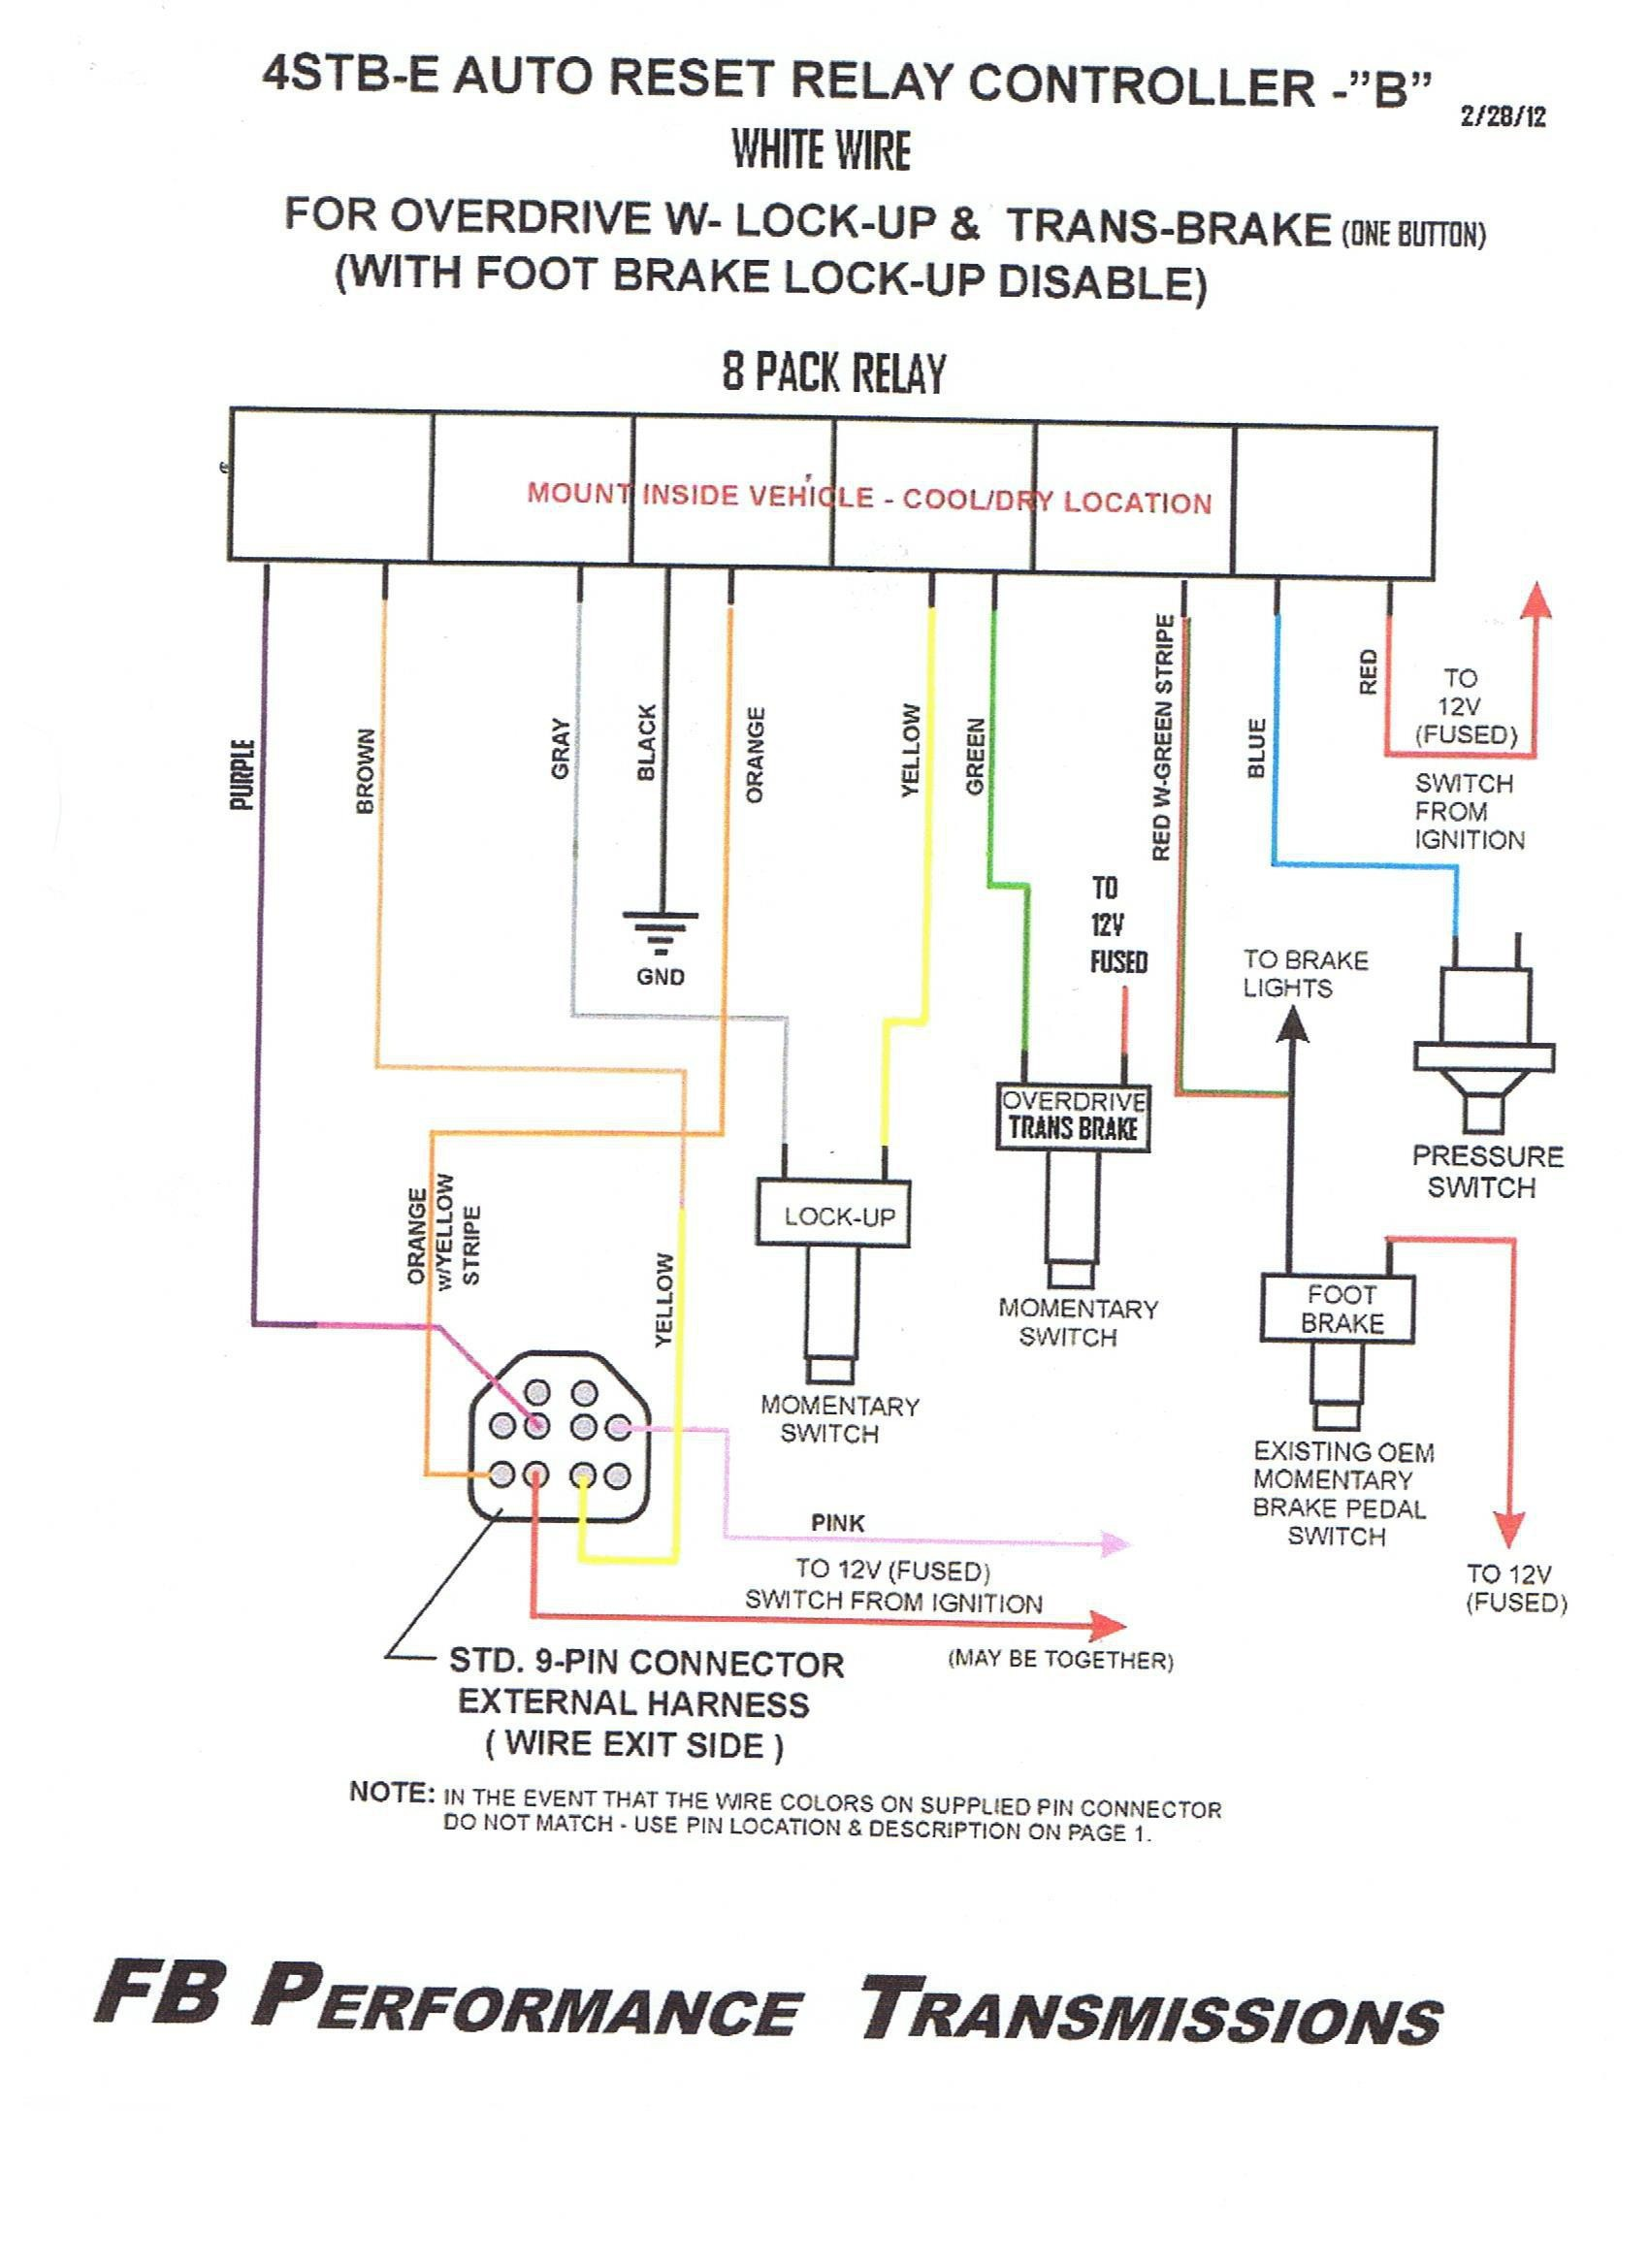 Auto Transmission Diagram Wiring Diagram for A Relay to A Switch New Wiring Diagram Safety Of Auto Transmission Diagram